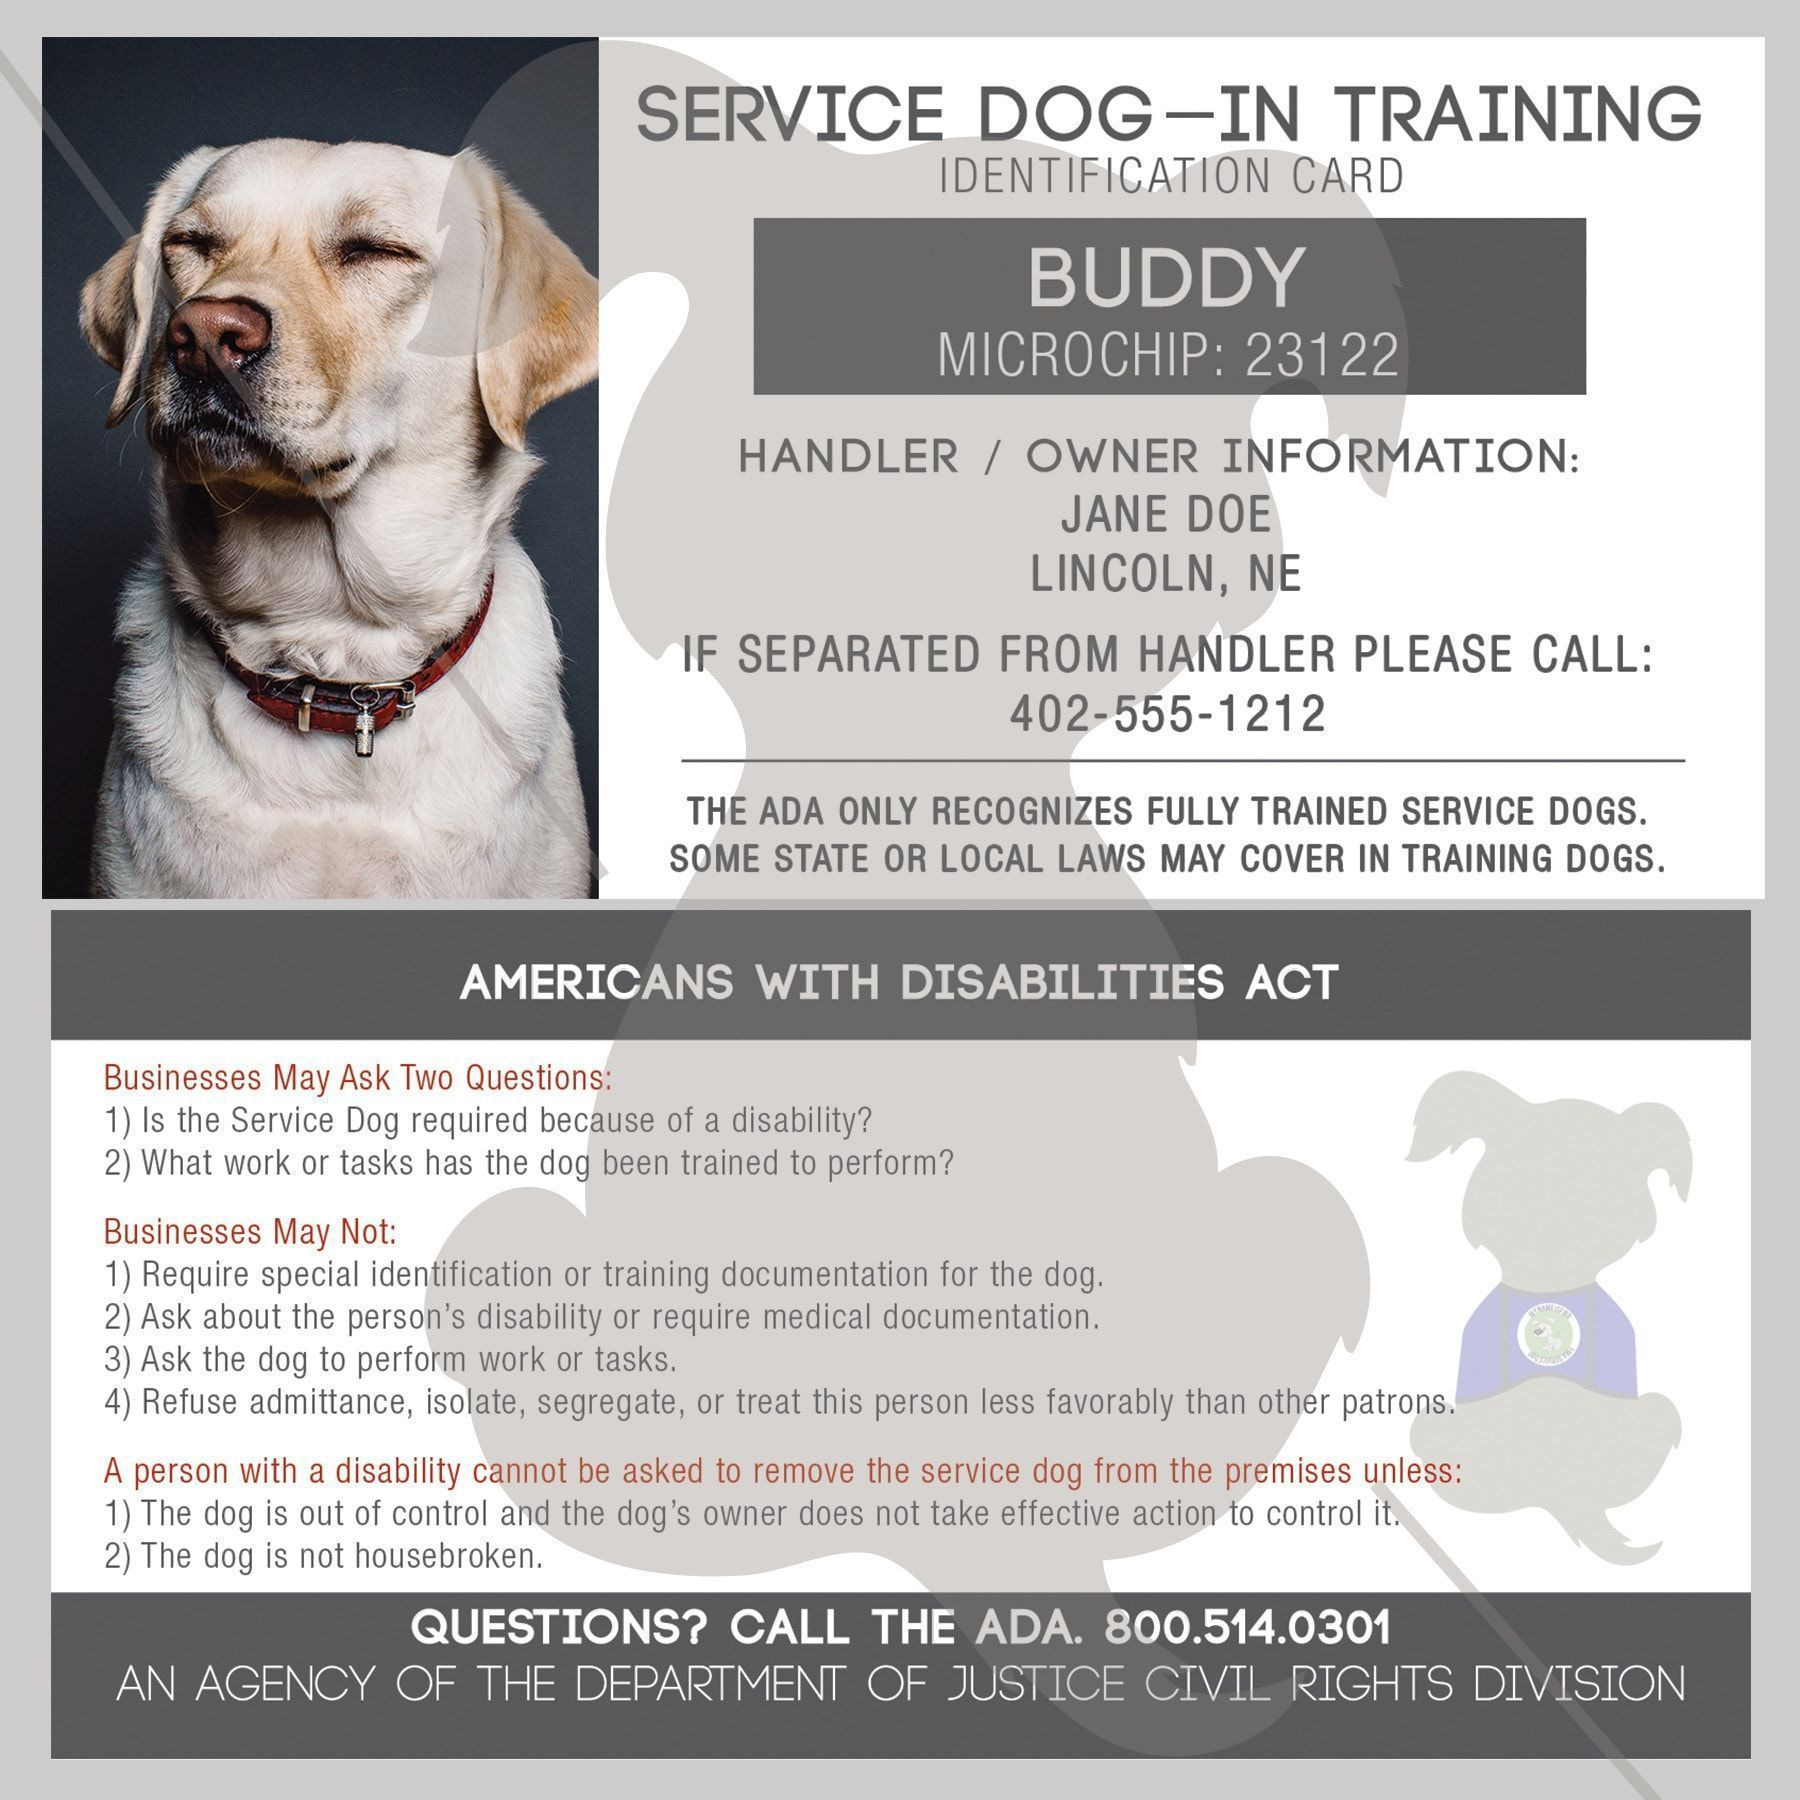 Id Card Service Dog In Training Doganxietydiy Service Dogs Dog Training Dog Identification